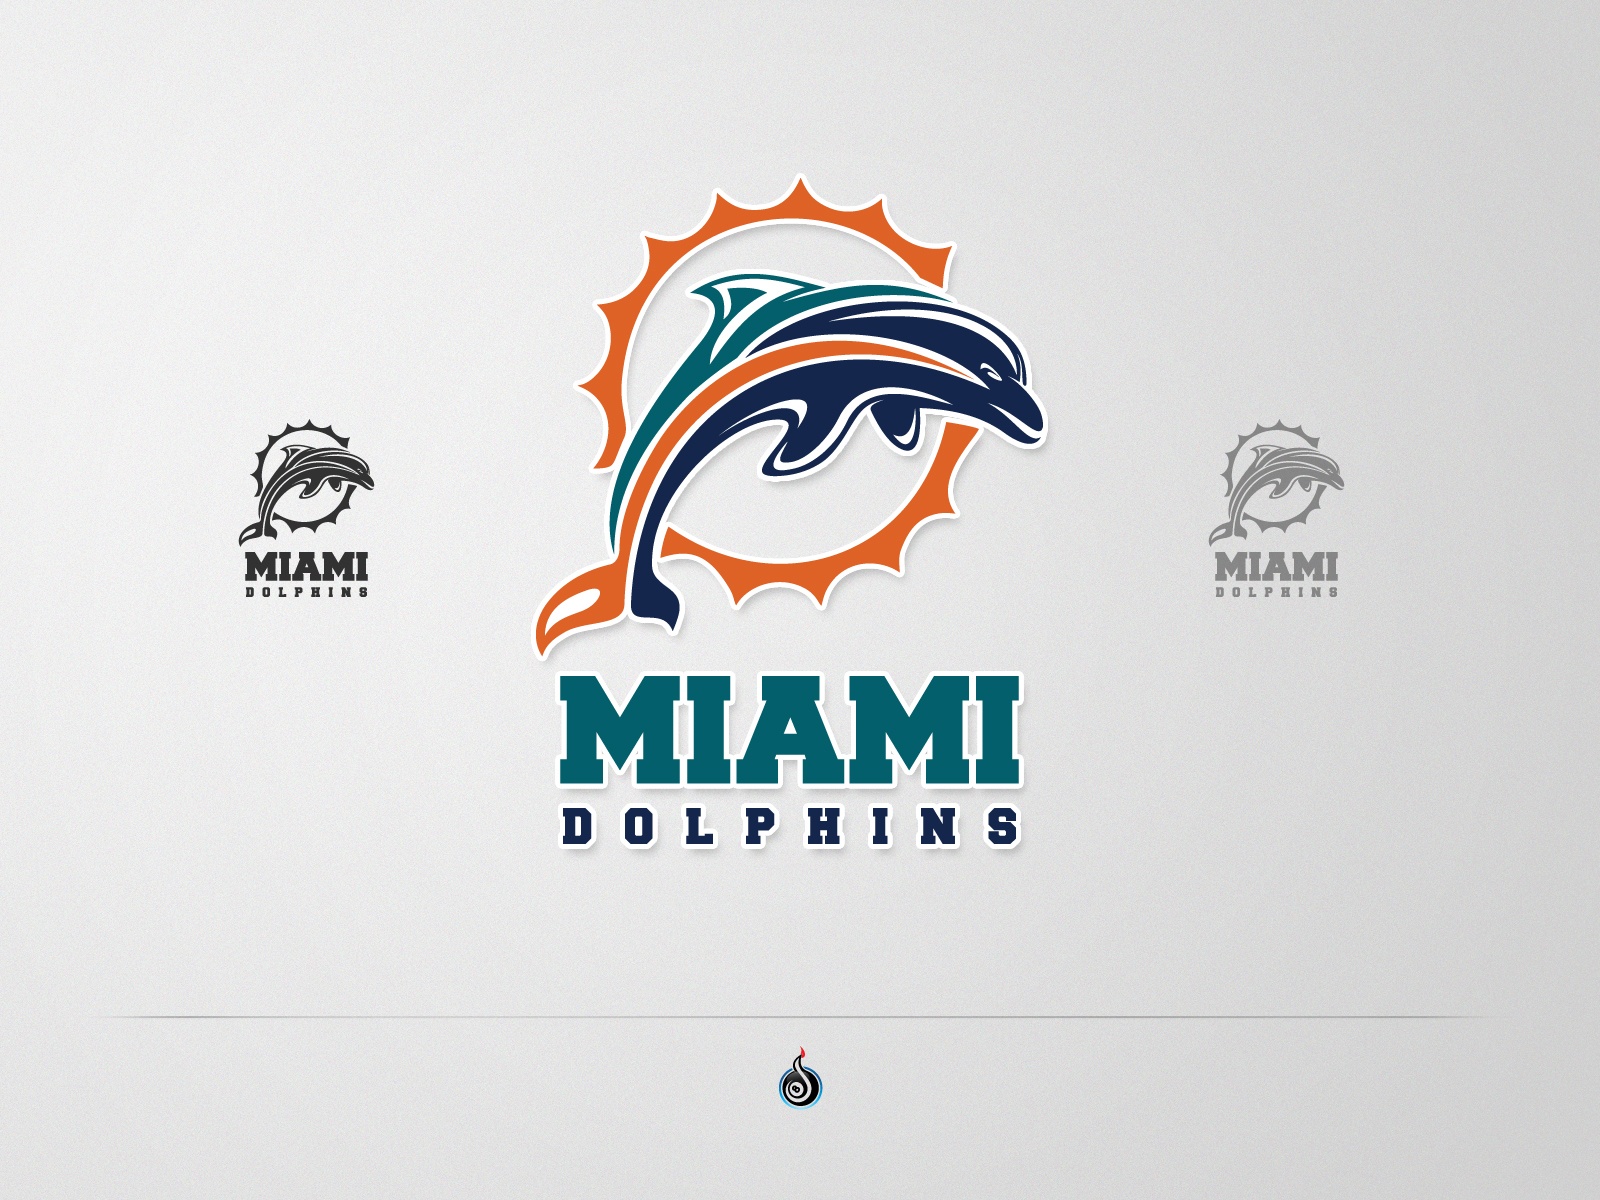 Miami Dolphins New Logo Top Design Possibilities For The Teams 2013 Look